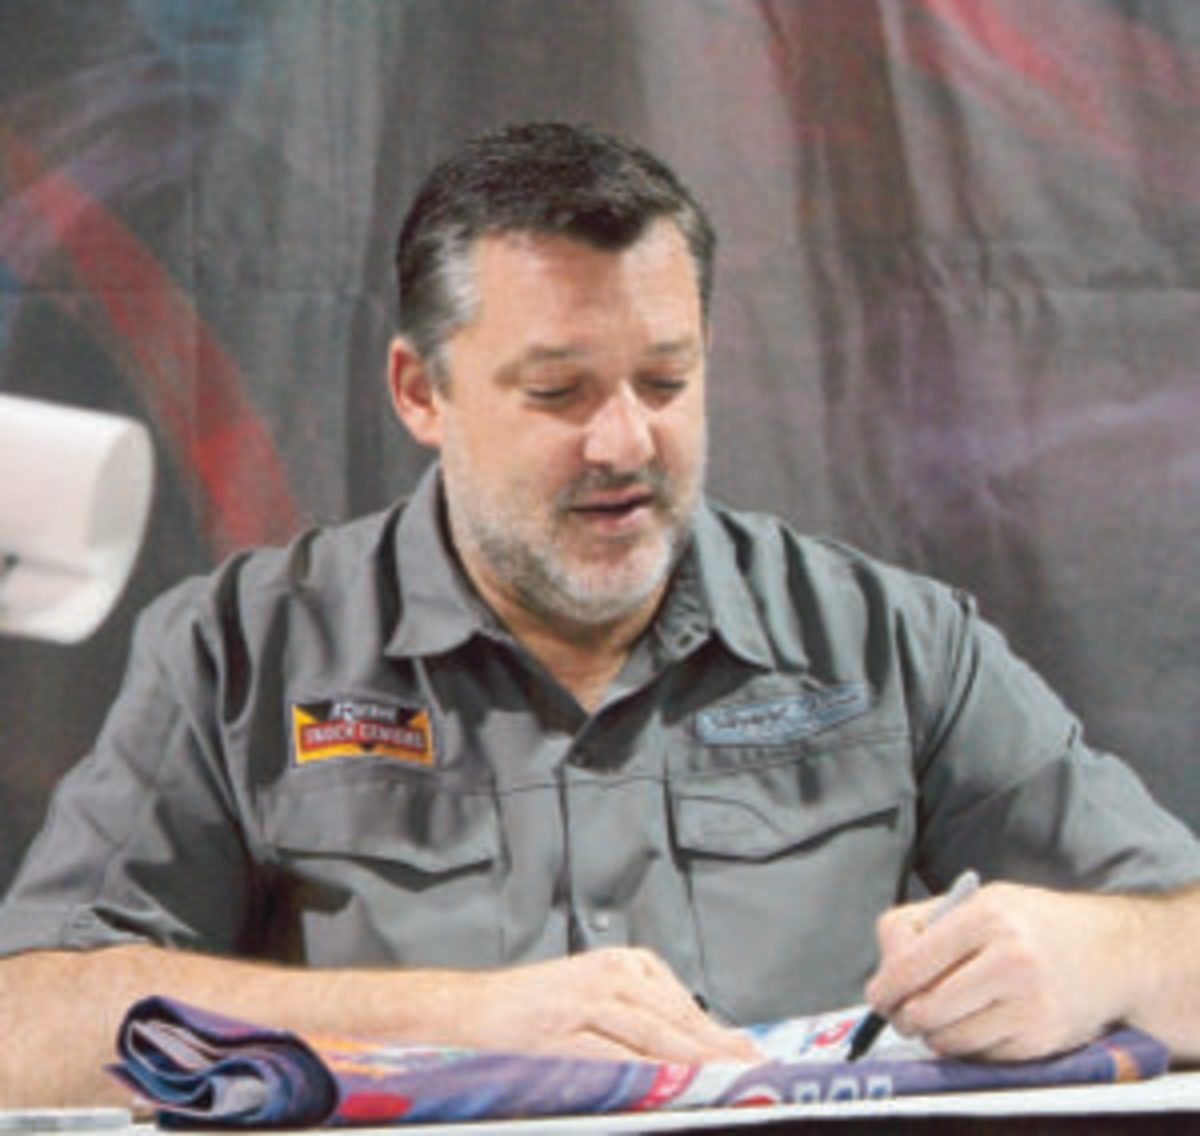 Former NASCAR star Tony Stewart signs autographs at the 2019 Chicago World of Wheels show.